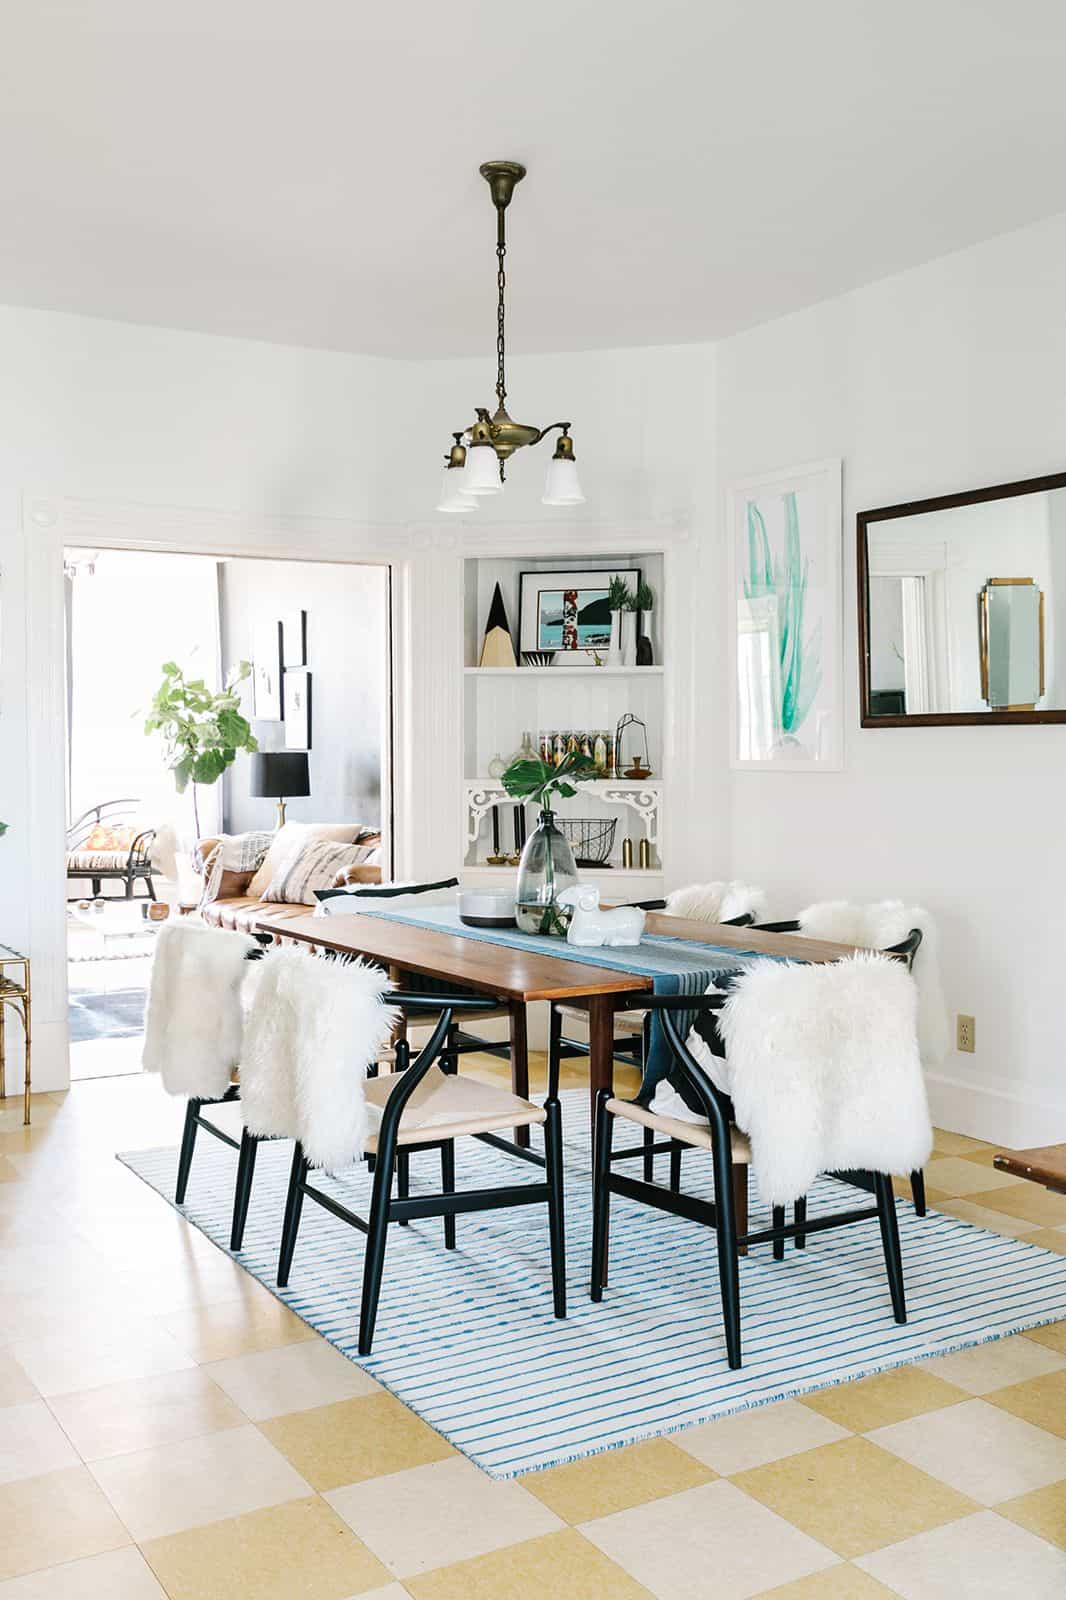 Wishbone Dining Chair The Best House Inspiration With The Wishbone Chair My Style Vita